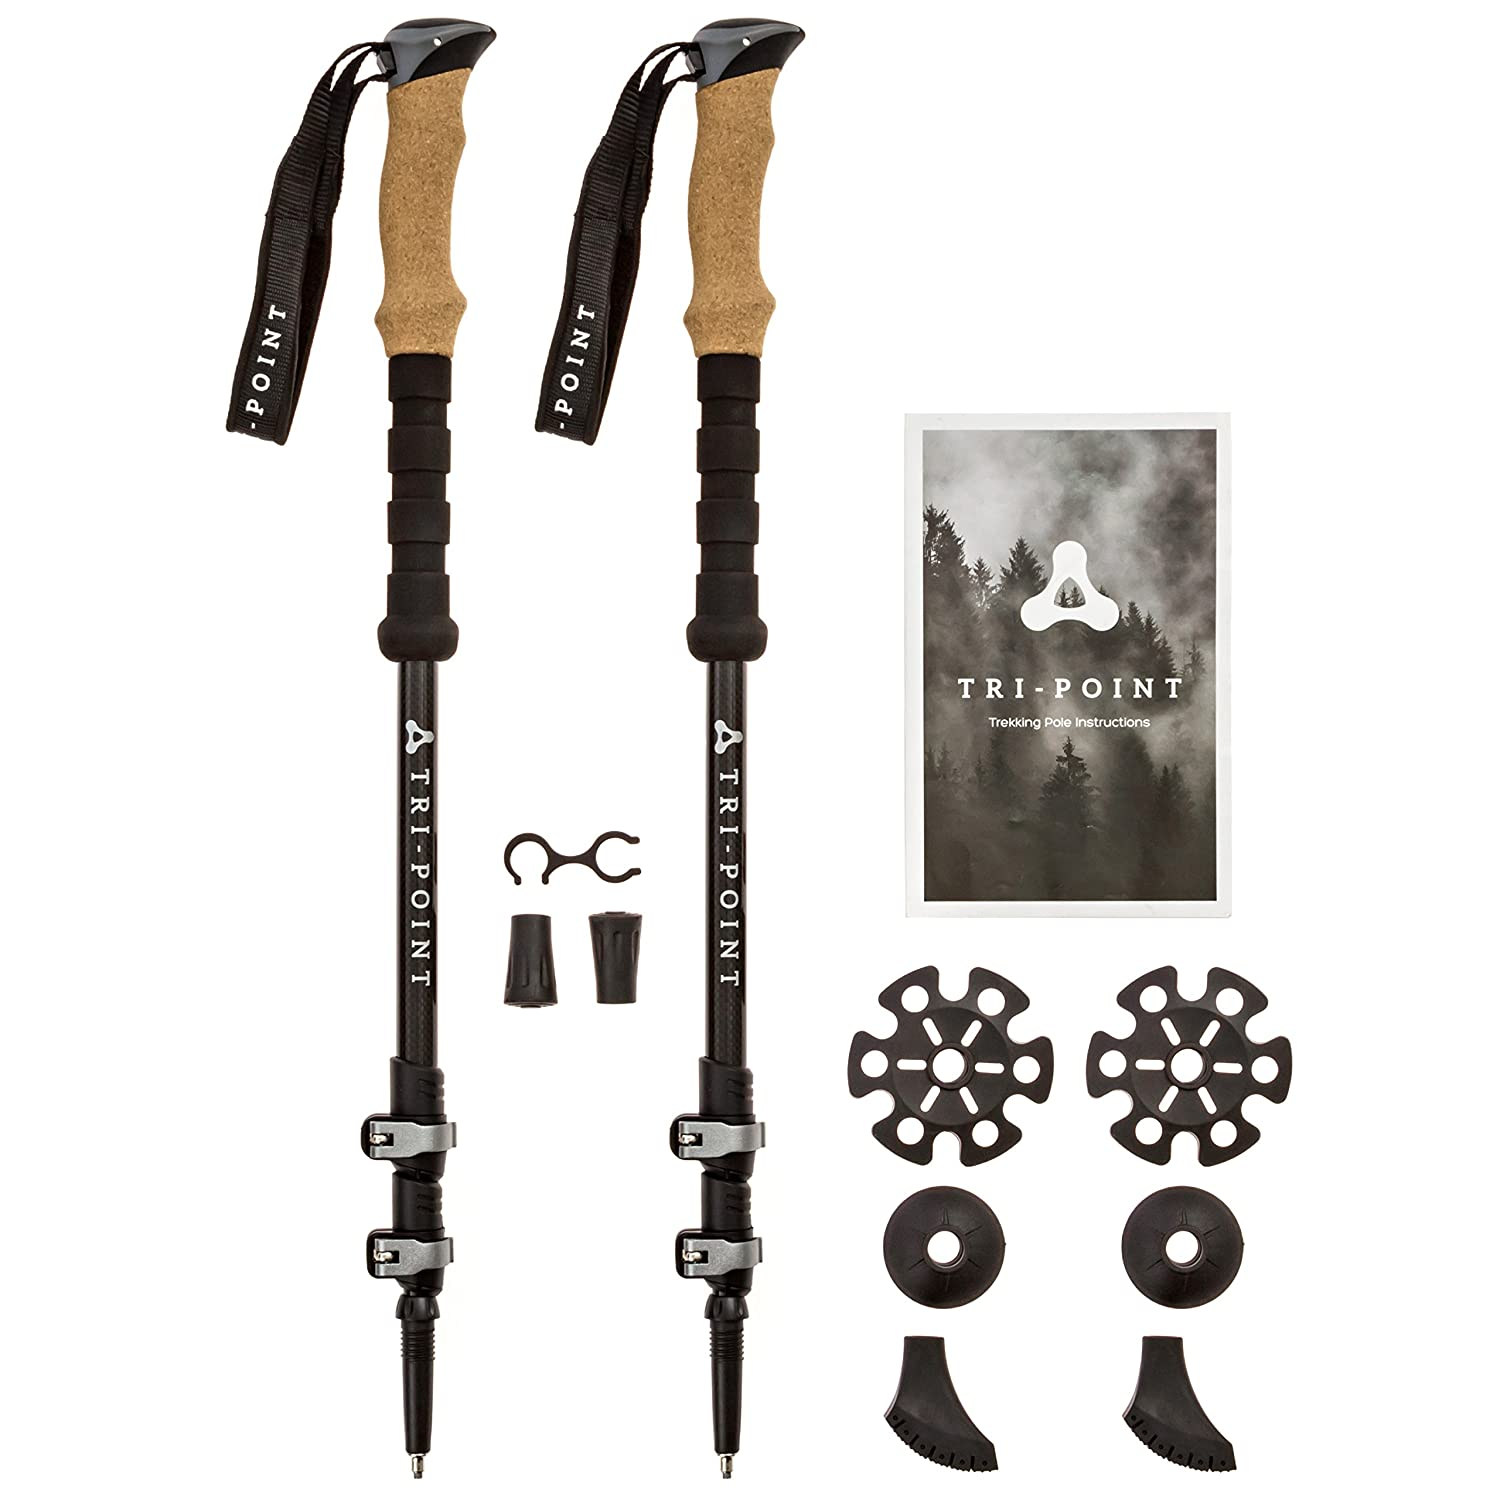 f1311ec4084 TRI-POINT Trekking Poles - 3k Carbon Fiber with Metal Quick Locks   Cork  Grips - Lightweight